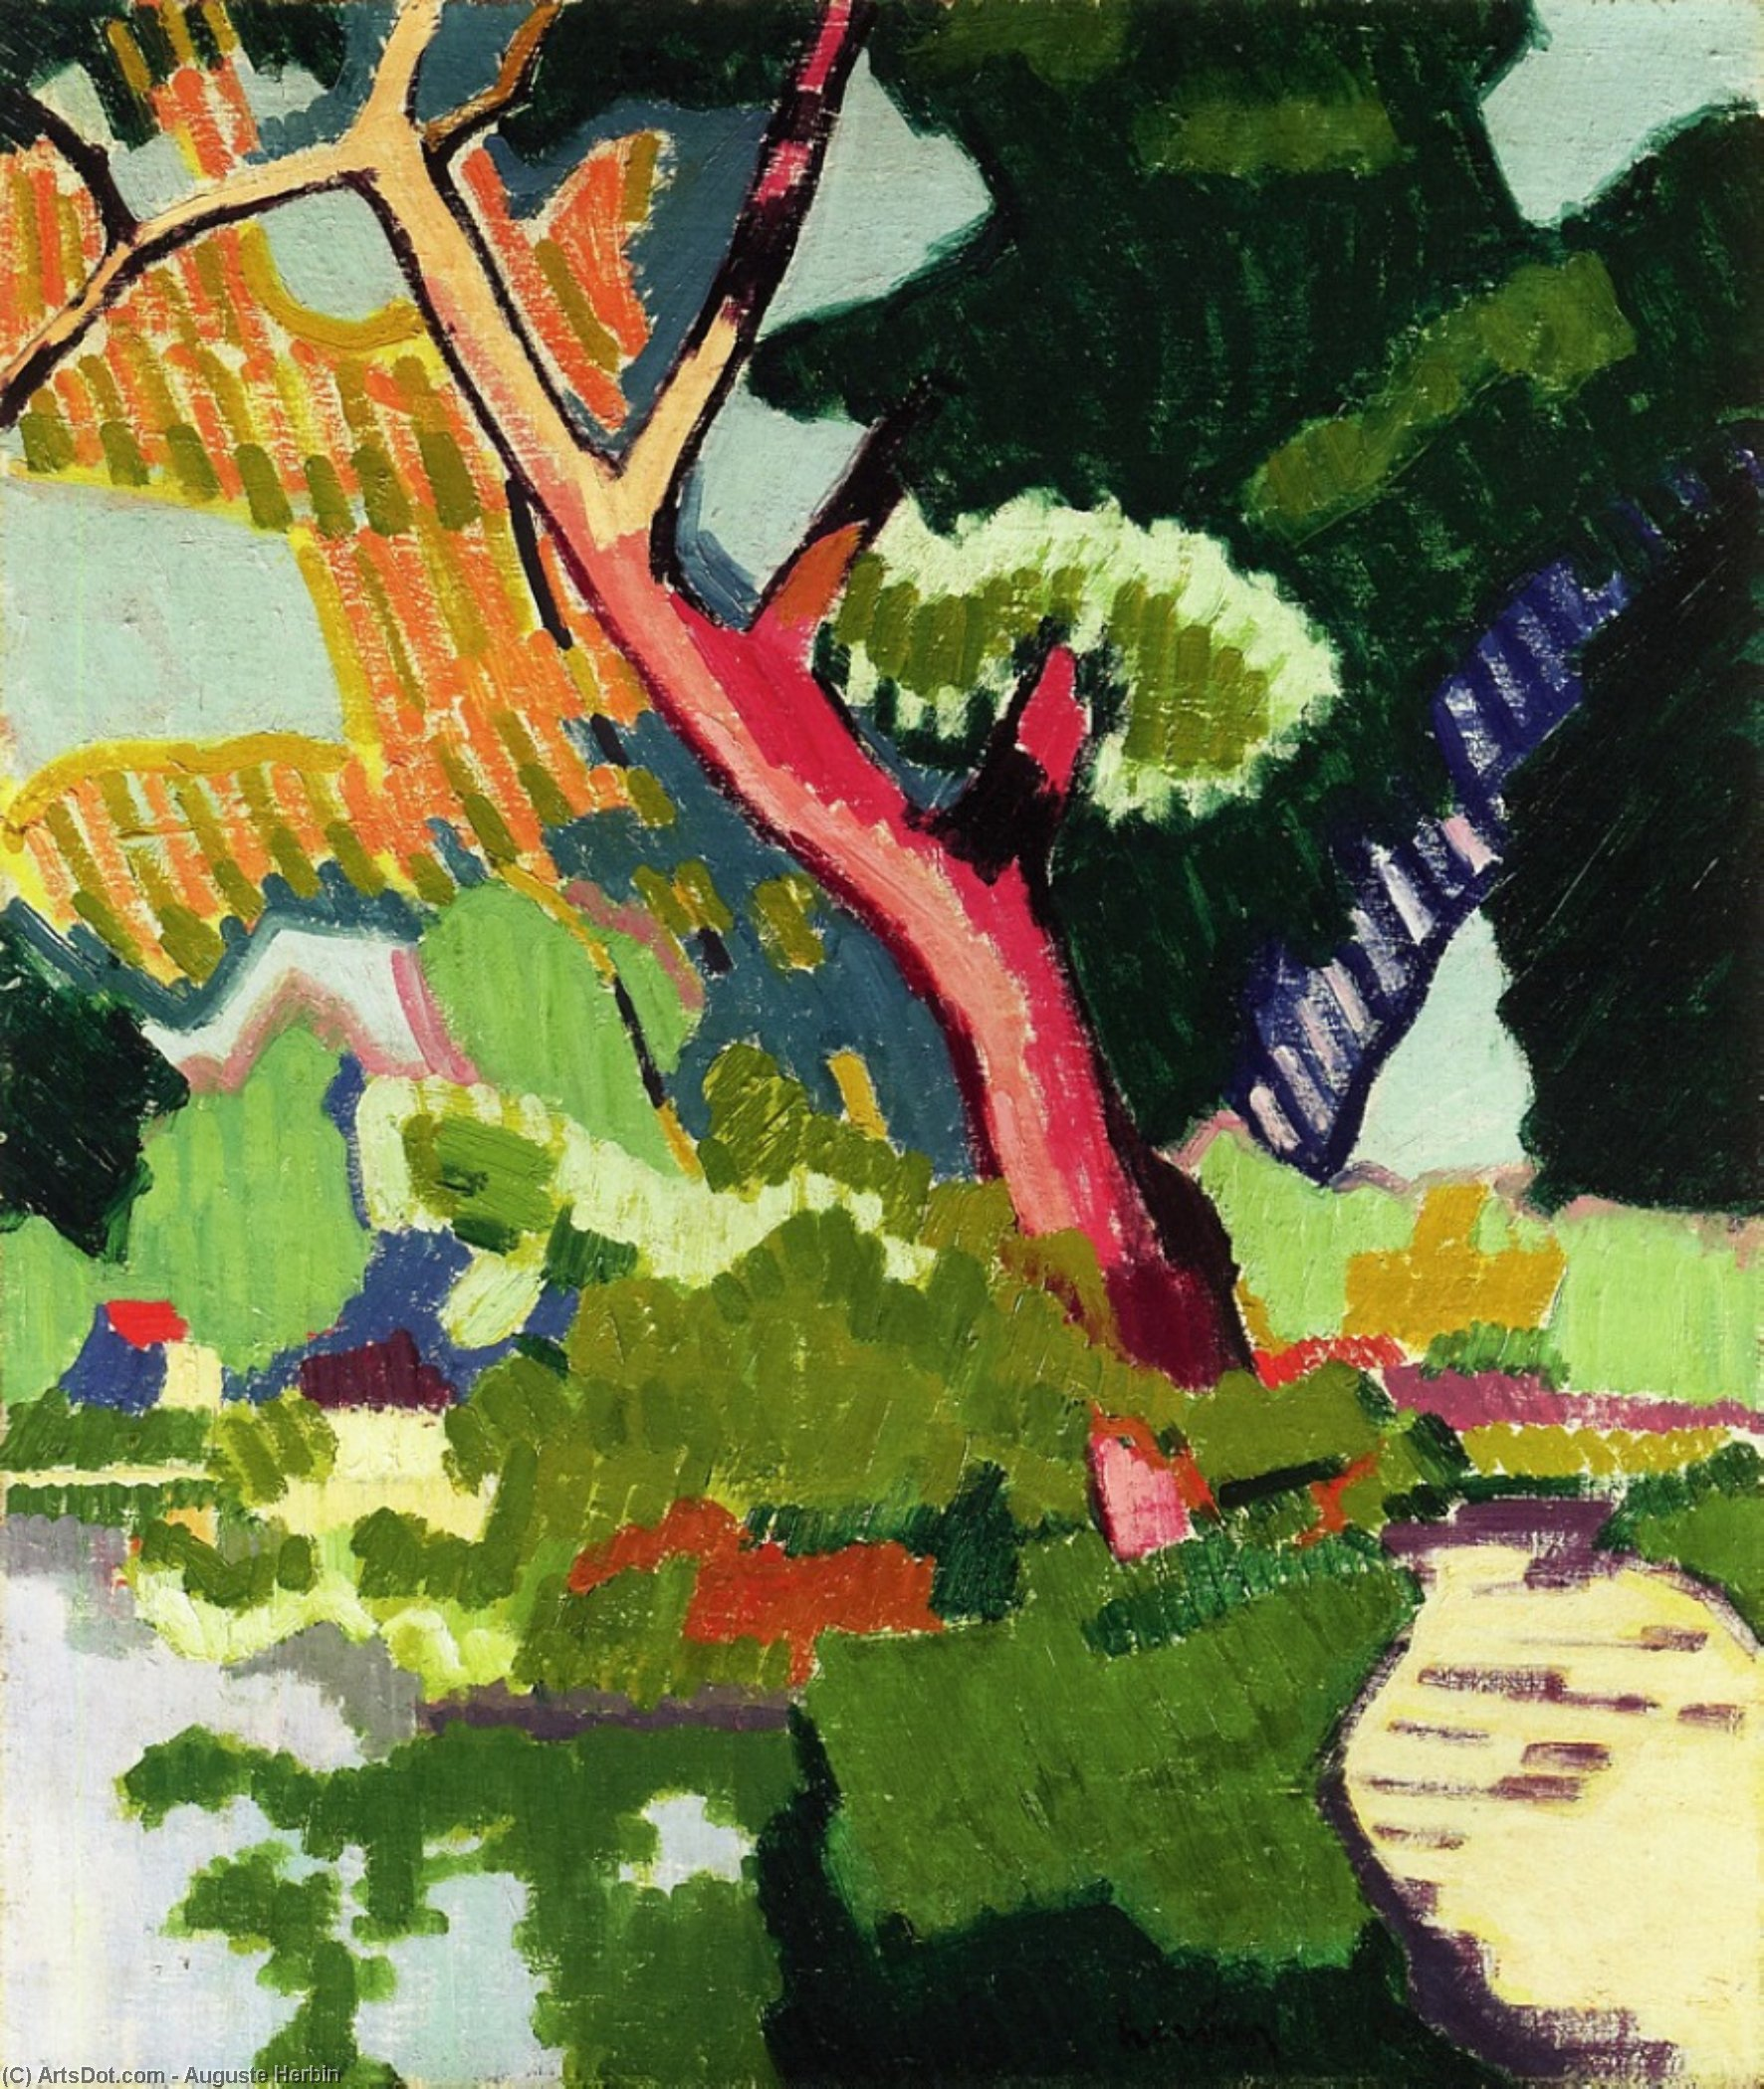 Landscape of a Waterway, Oil On Canvas by Auguste Herbin (1882-1960, United States)